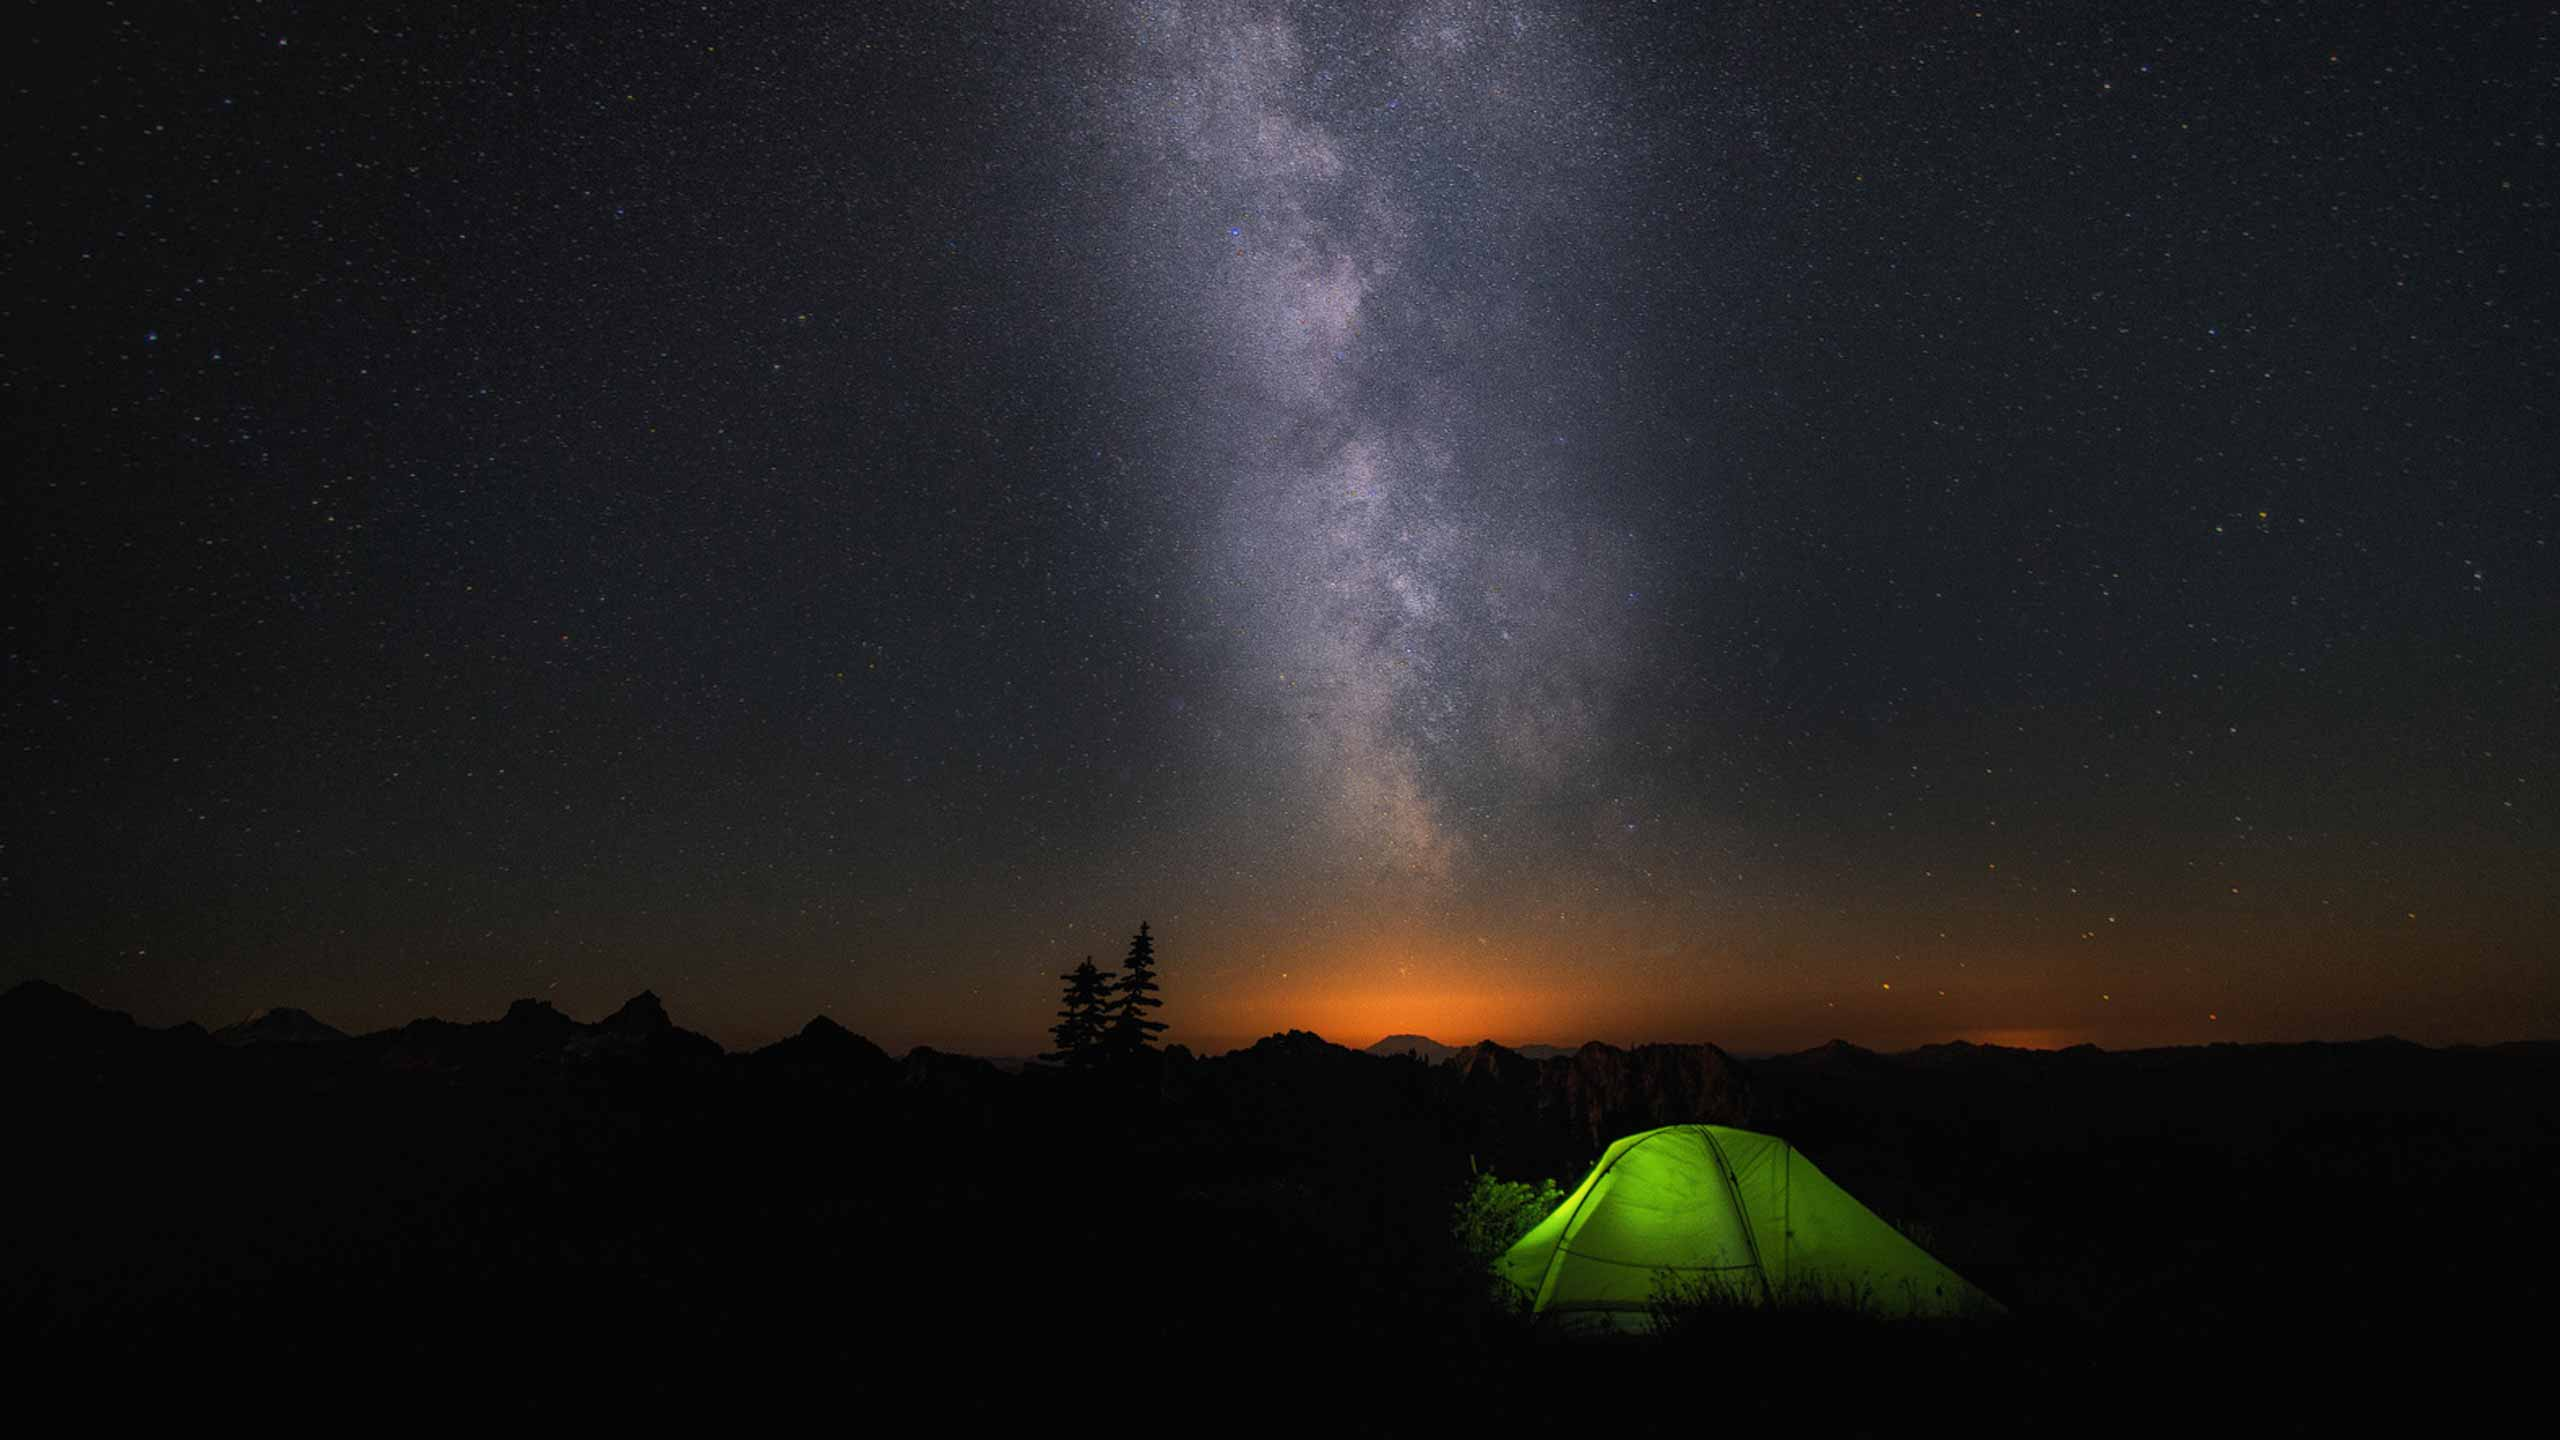 A green tent below the Milky Way in a dark night sky